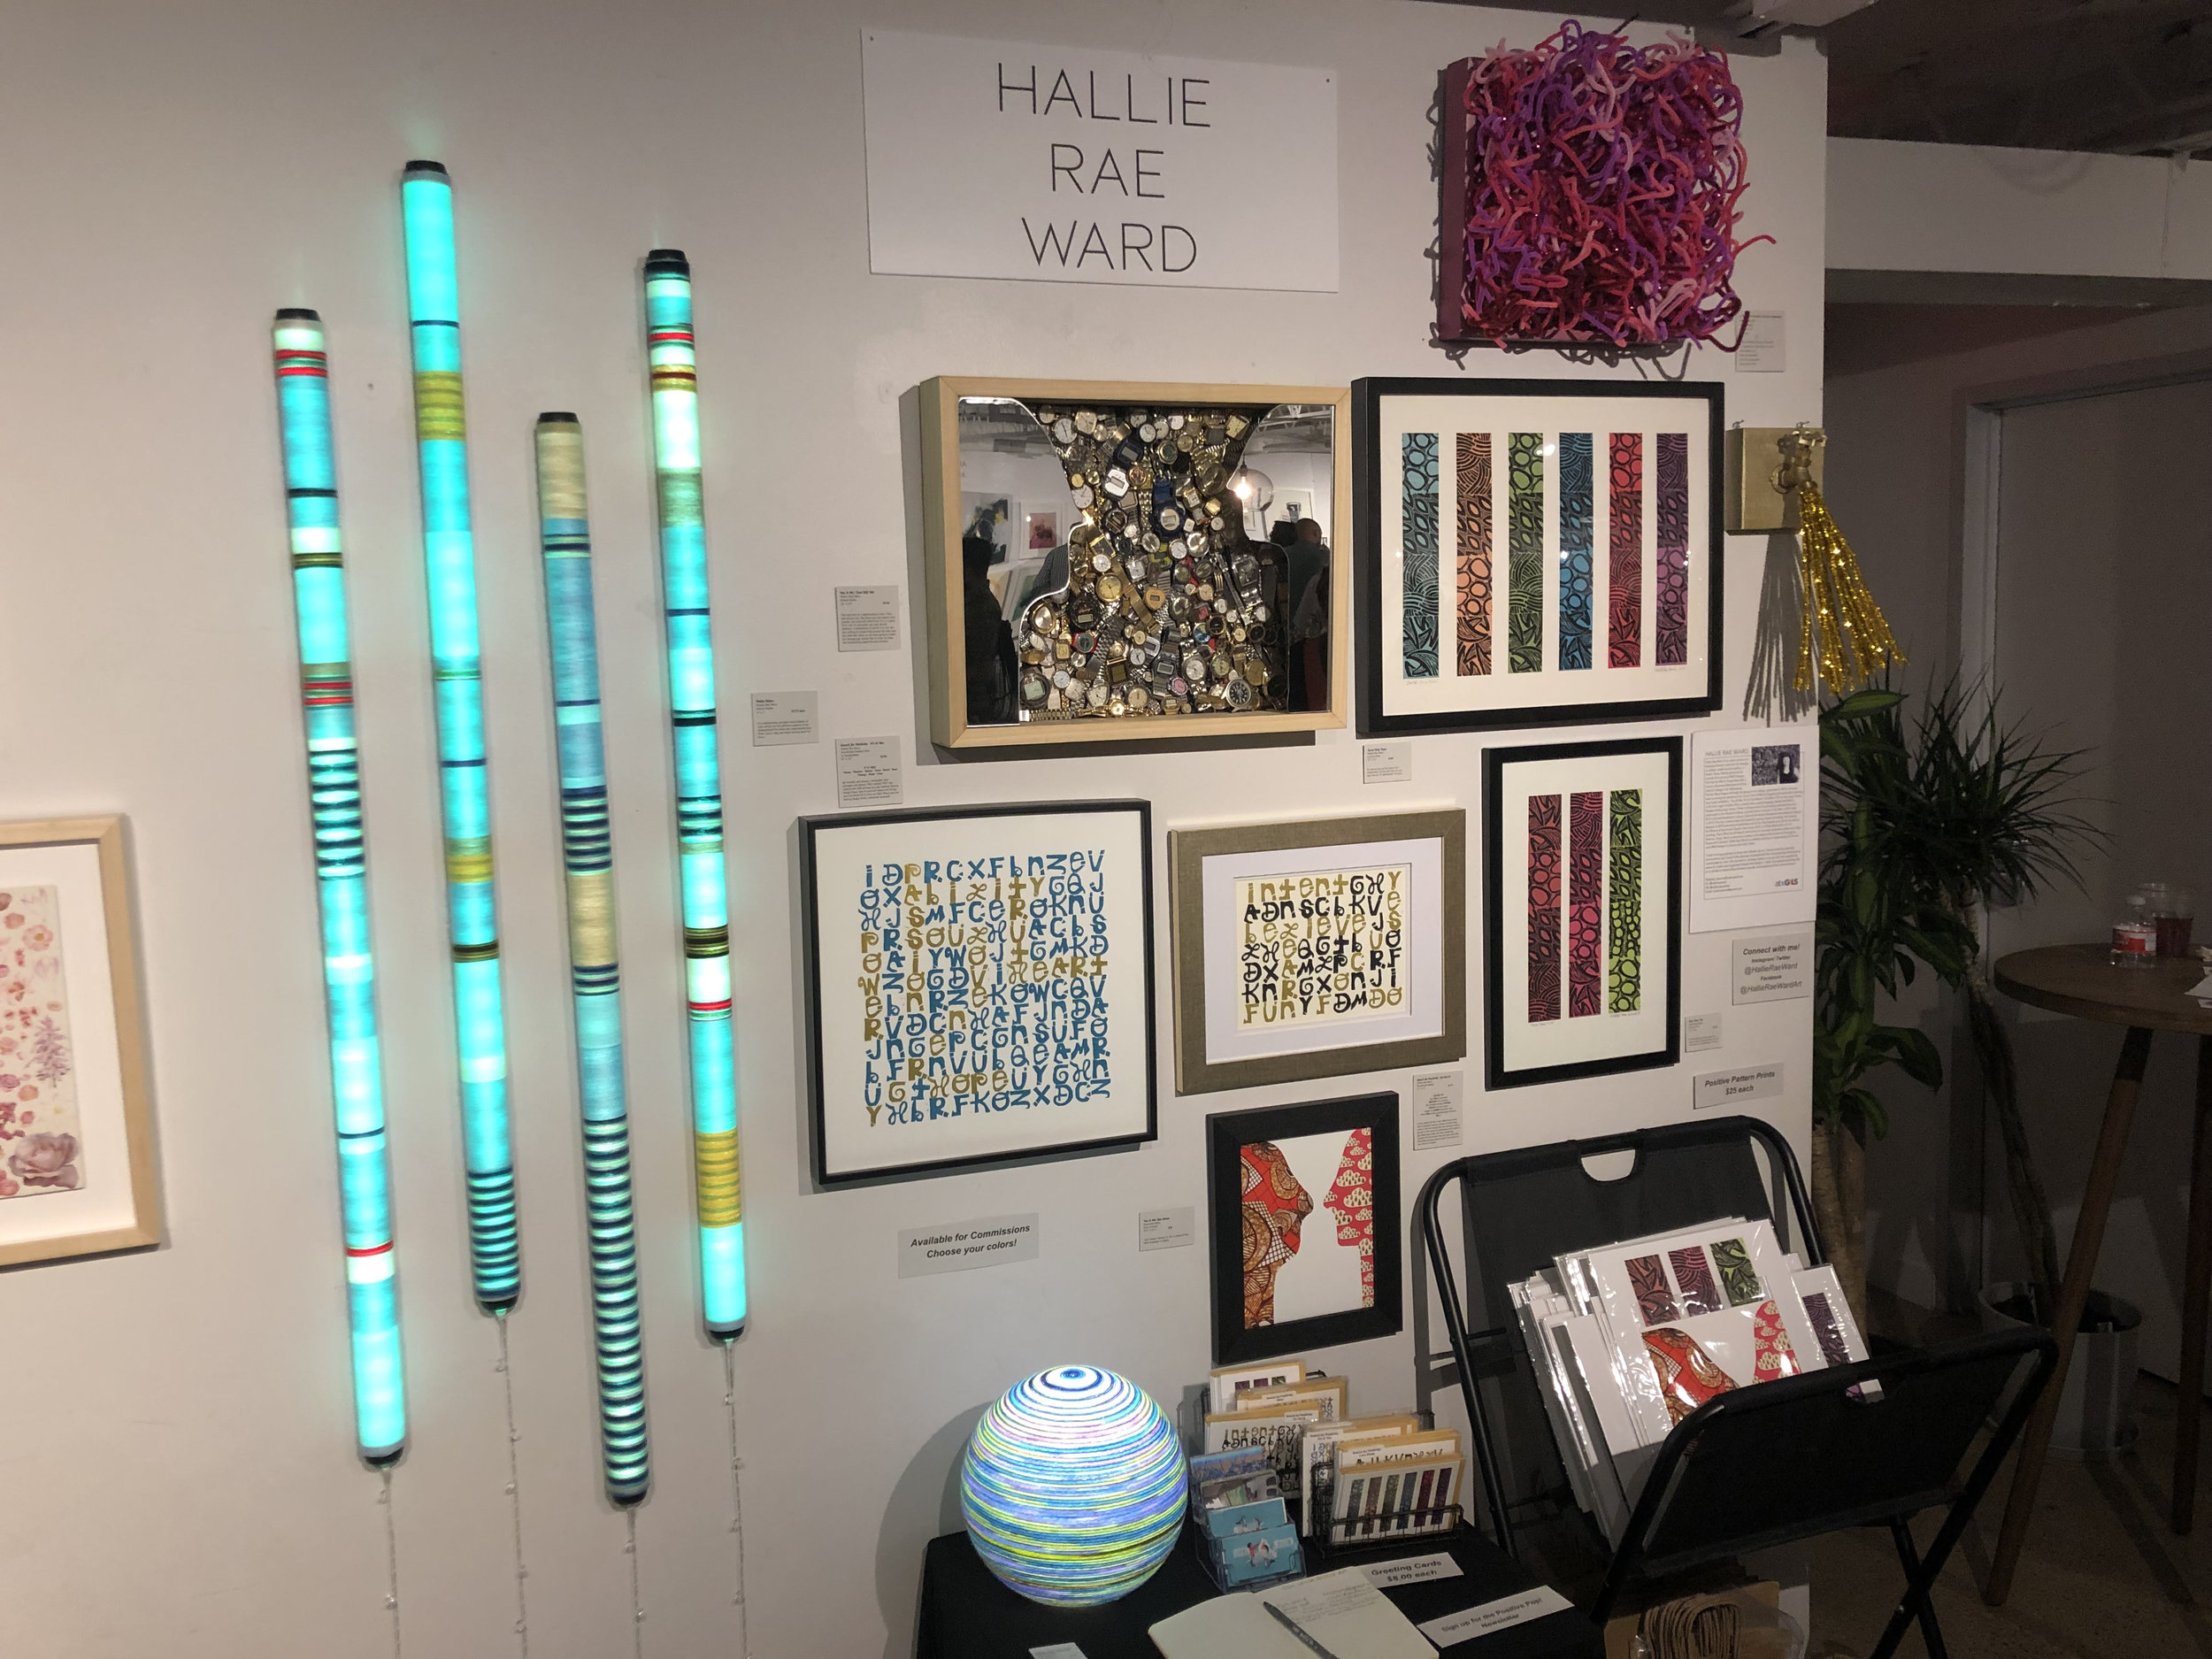 Hallie Rae Ward - BLOOM - Austin Artist Hallie Rae Ward - BLOOM - Austin Artist